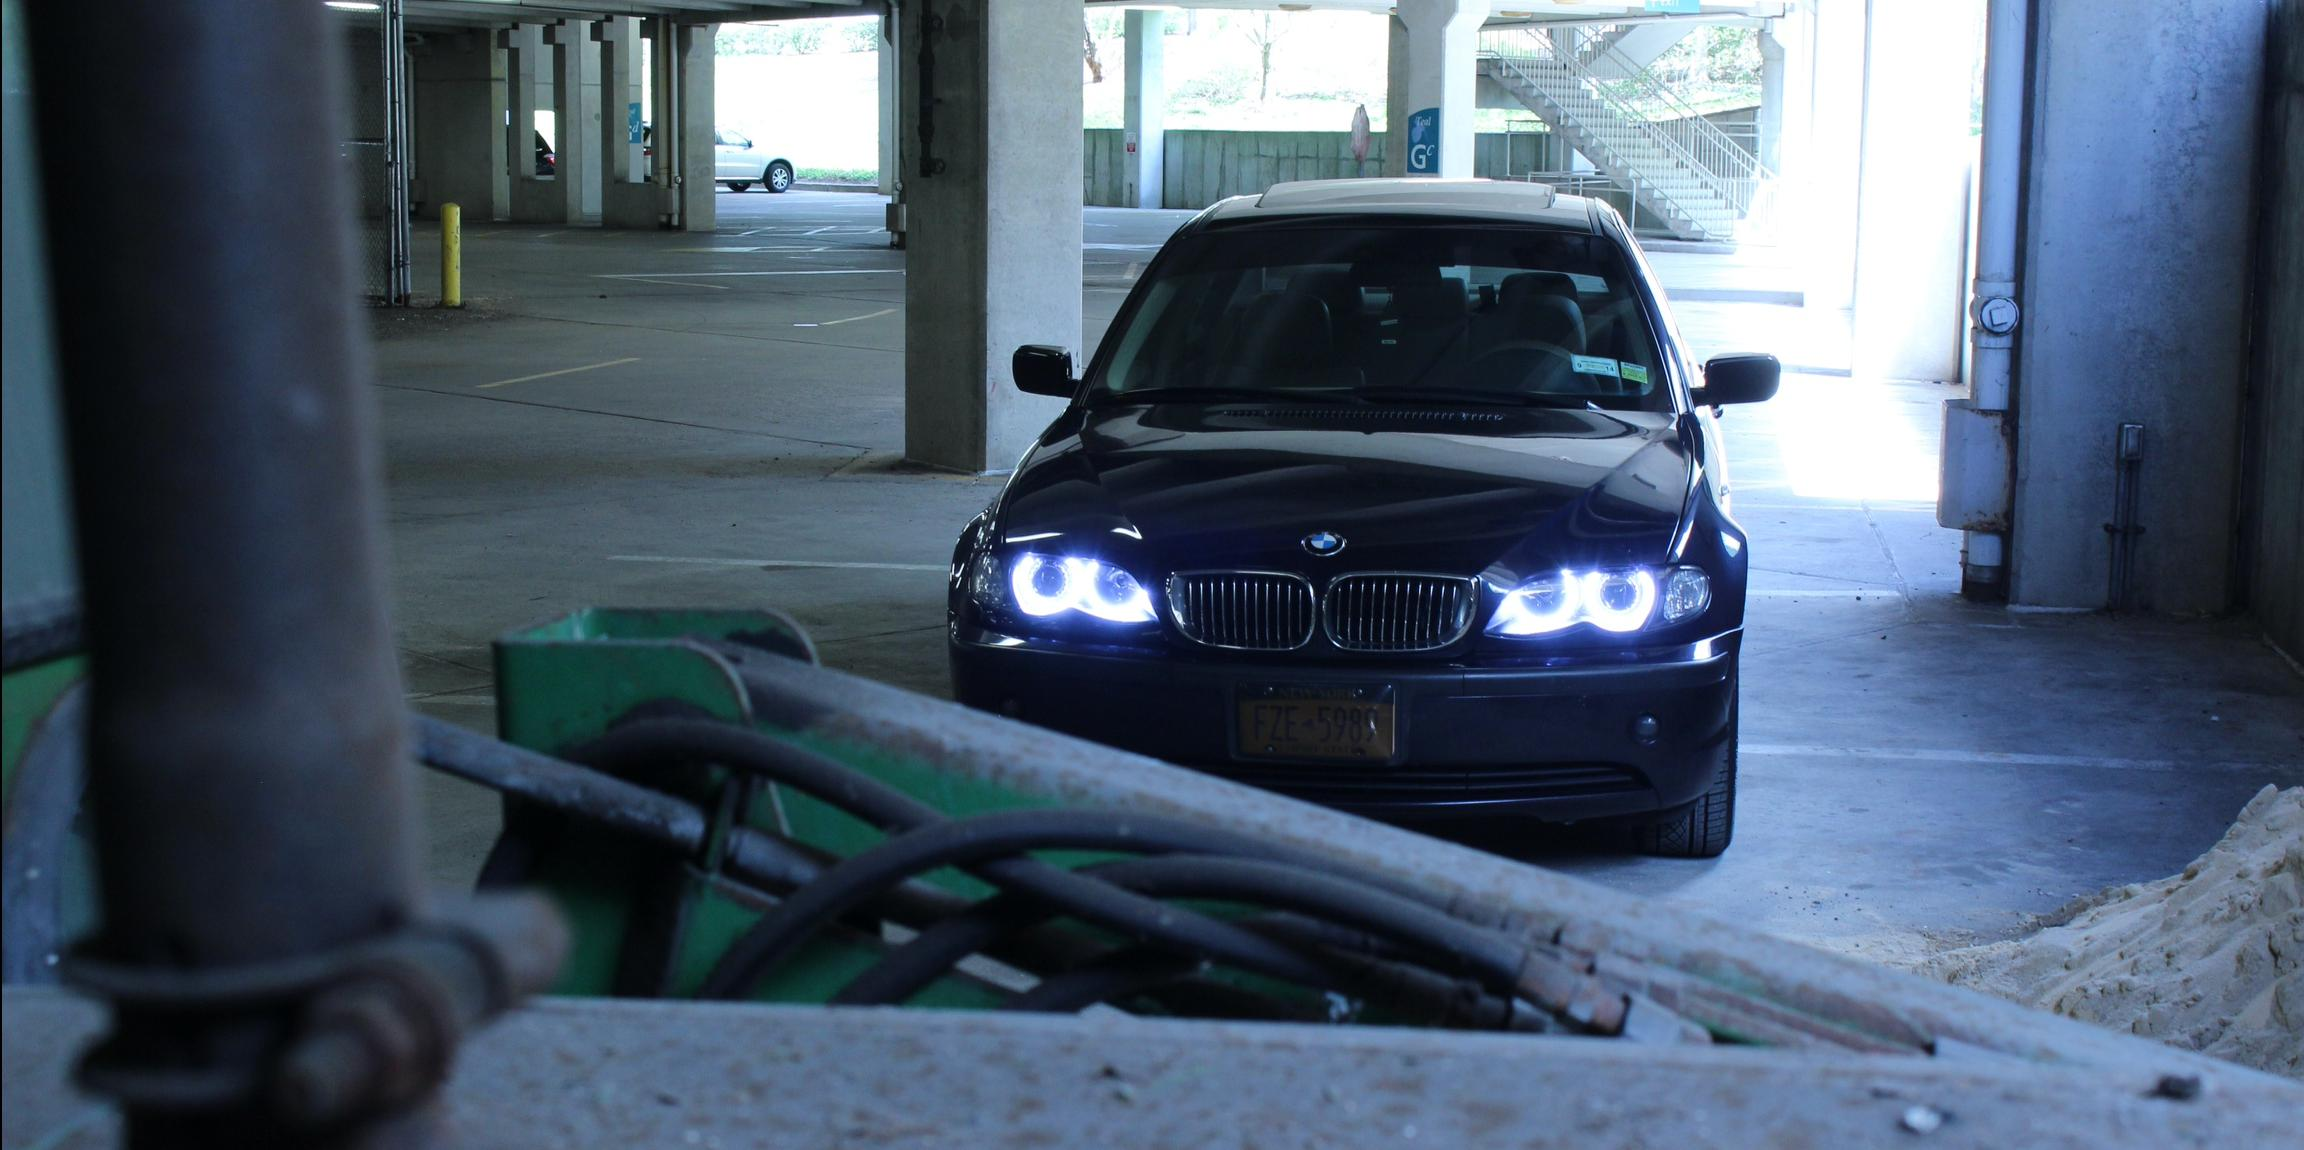 bimmer_e46 2005 BMW 3 Series